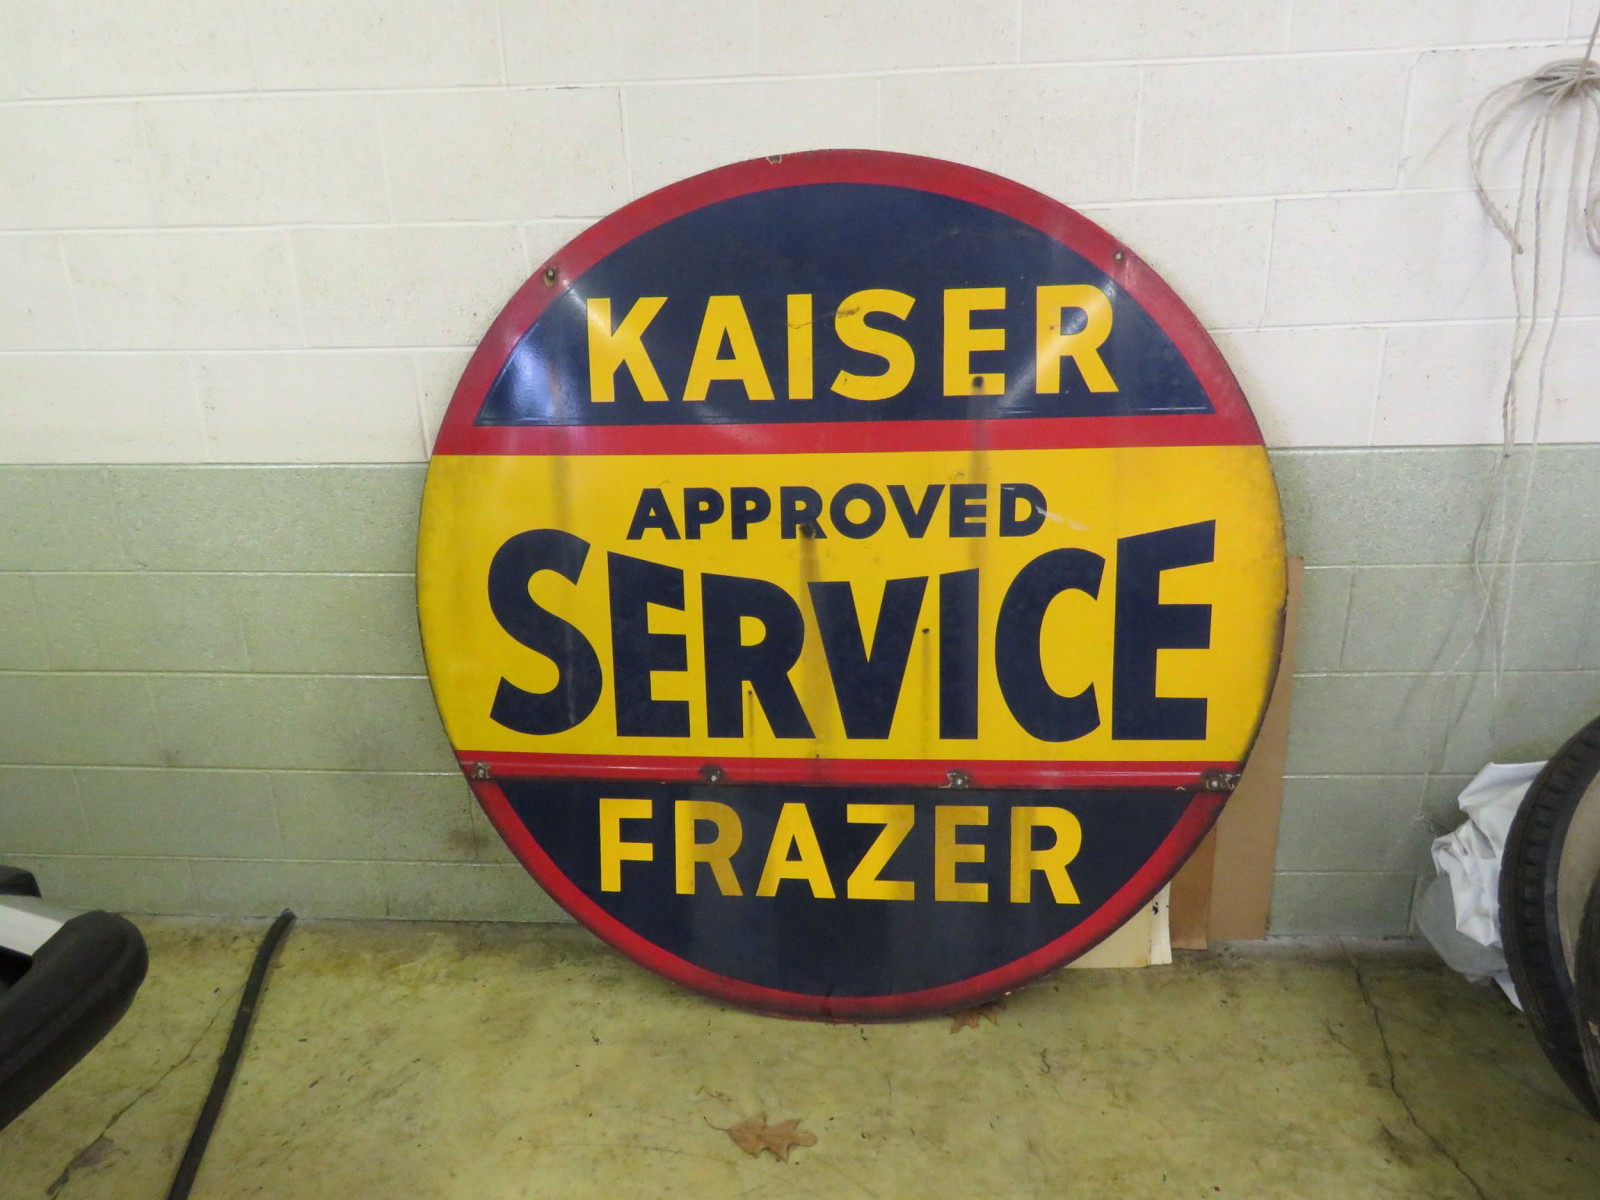 Kaiser-Frazer Approved Service Porcelain Sign - Image 2